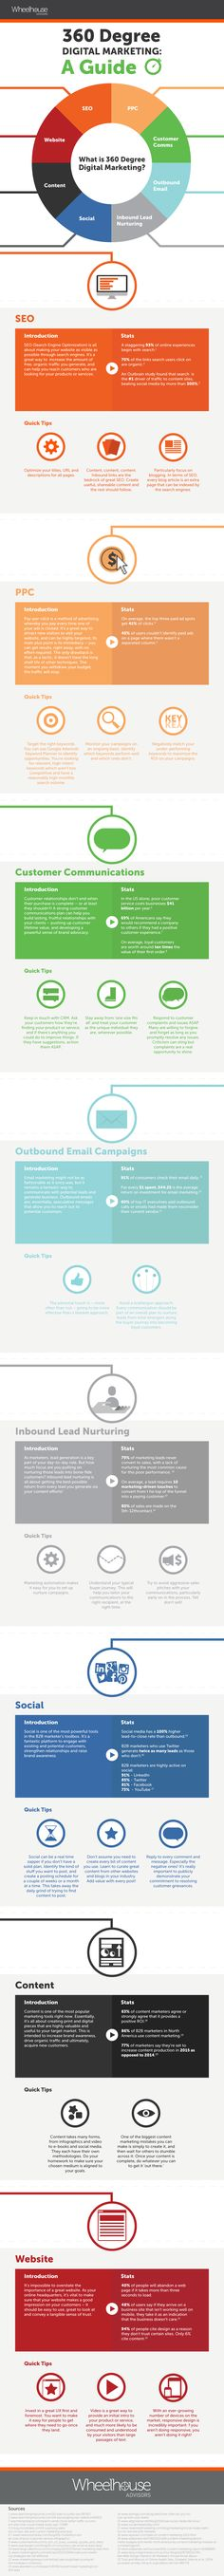 How to Create a 360-Degree Digital Marketing Strategy [Infographic]